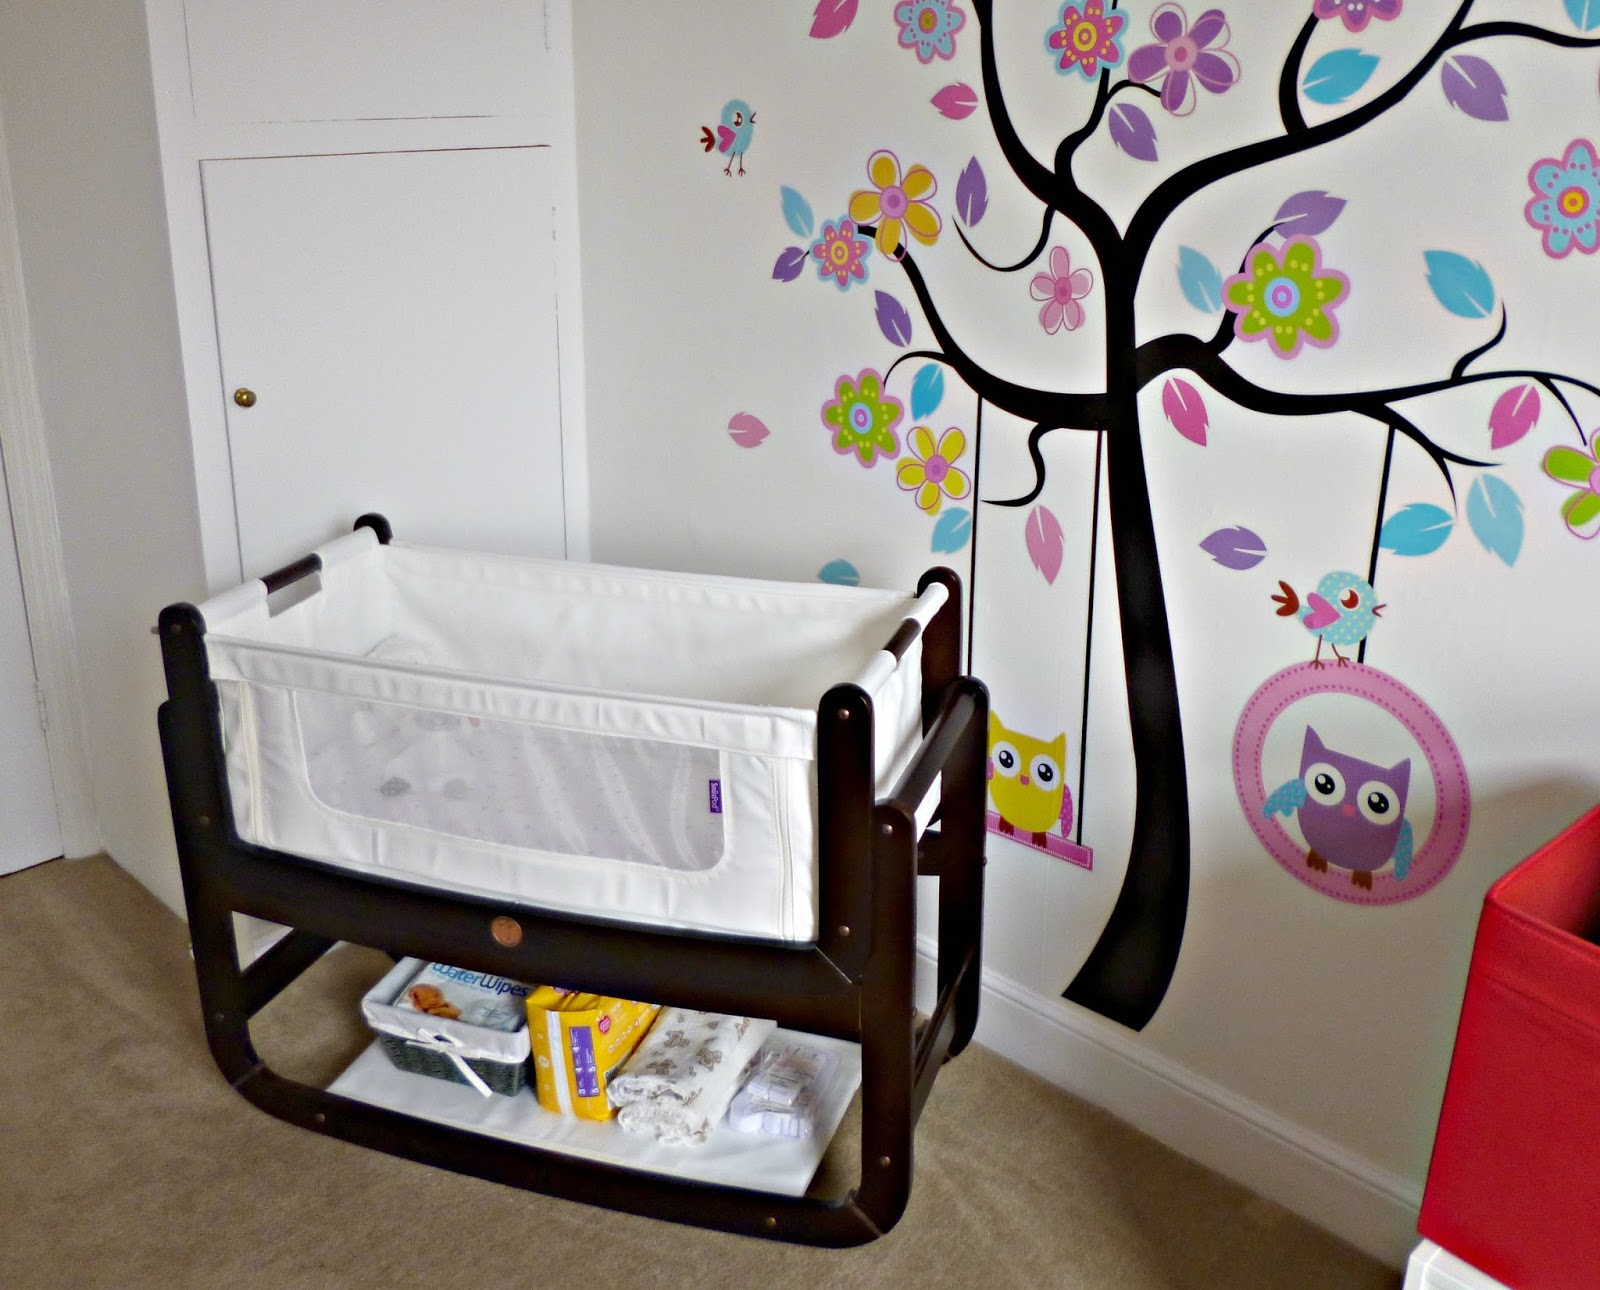 Mum and Baby: Snüzpod 3 in 1 bedside crib (co-sleeper) review